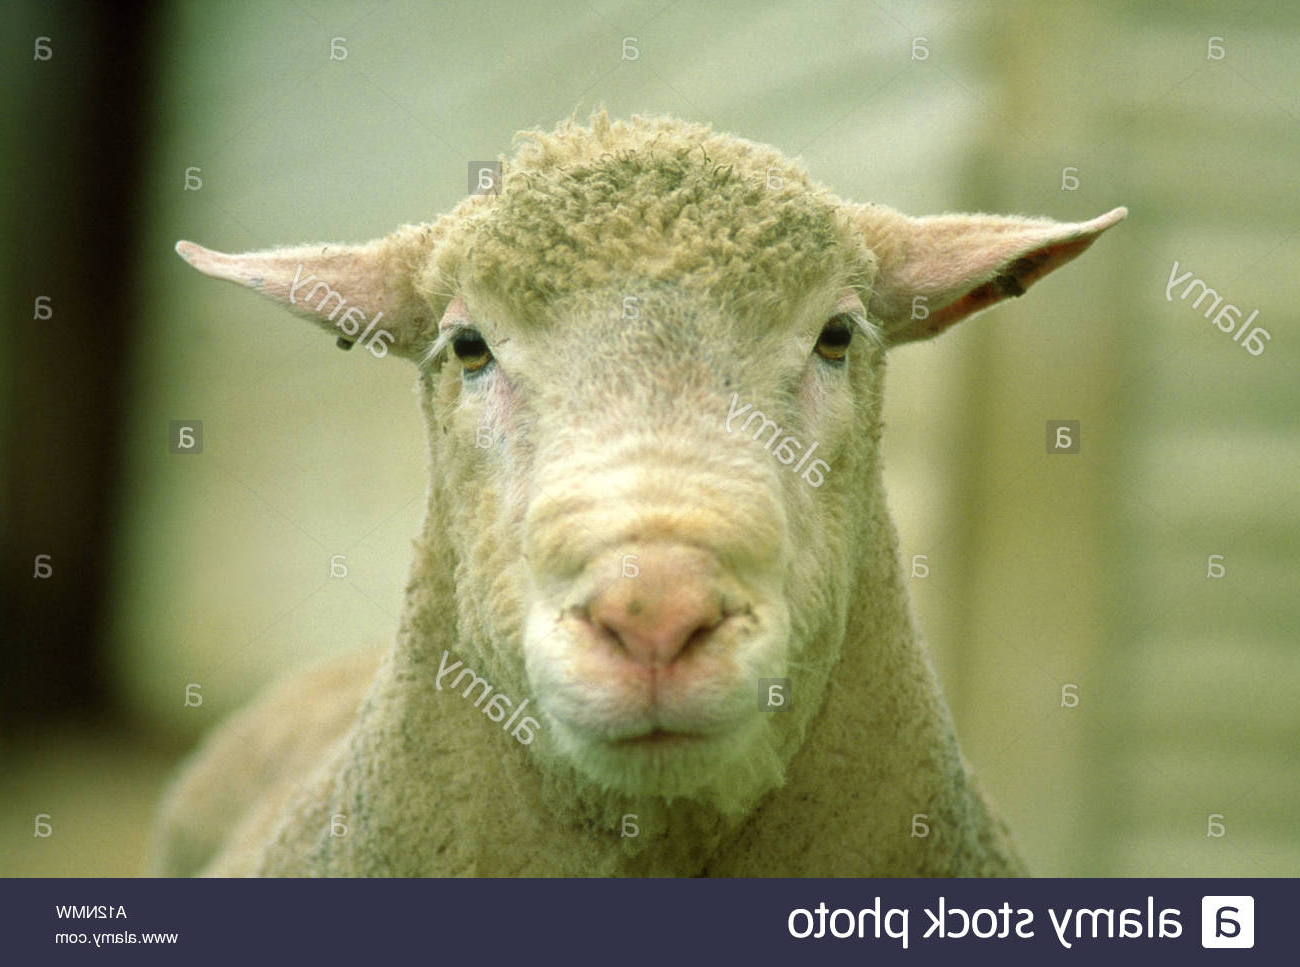 Champion Dorset Ram Stock Photo   Alamy throughout Gambar Domba Dorset